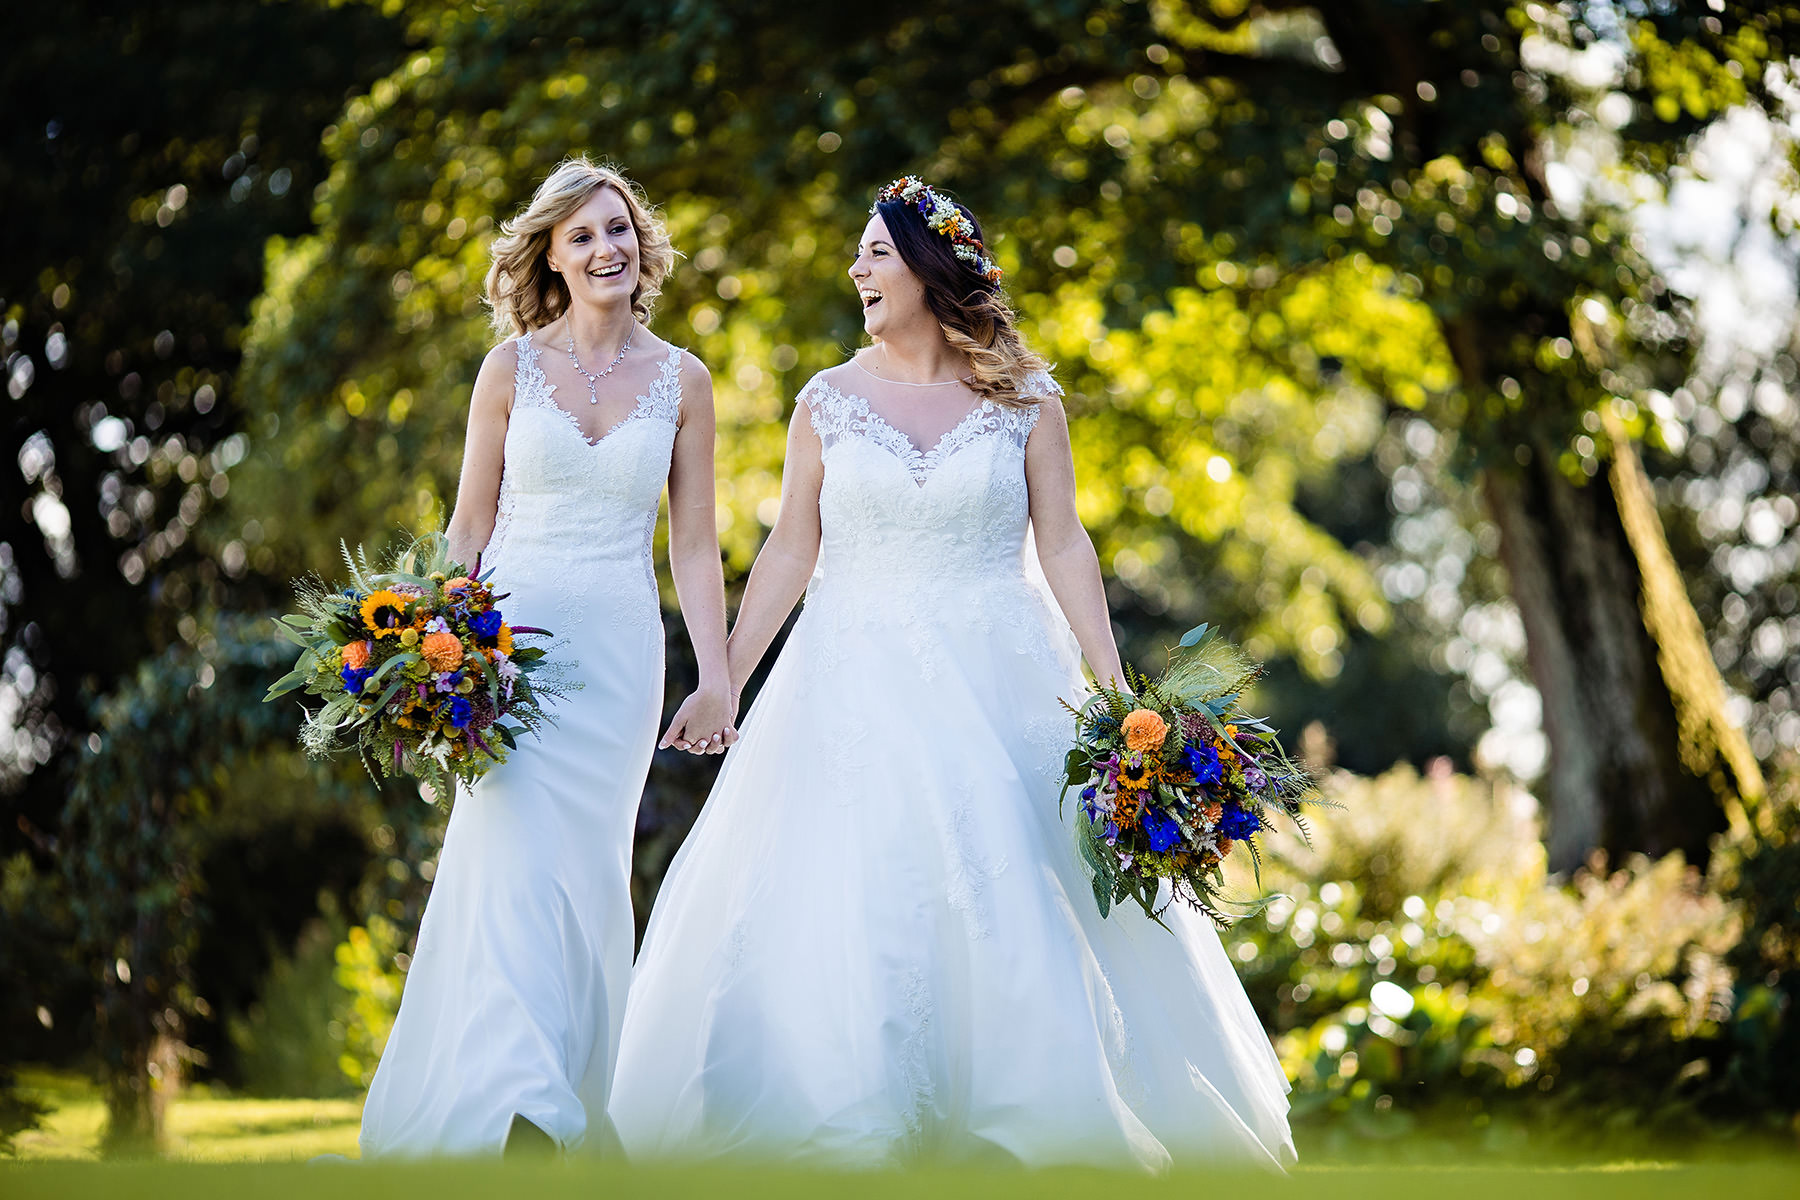 The brides walking across the grass